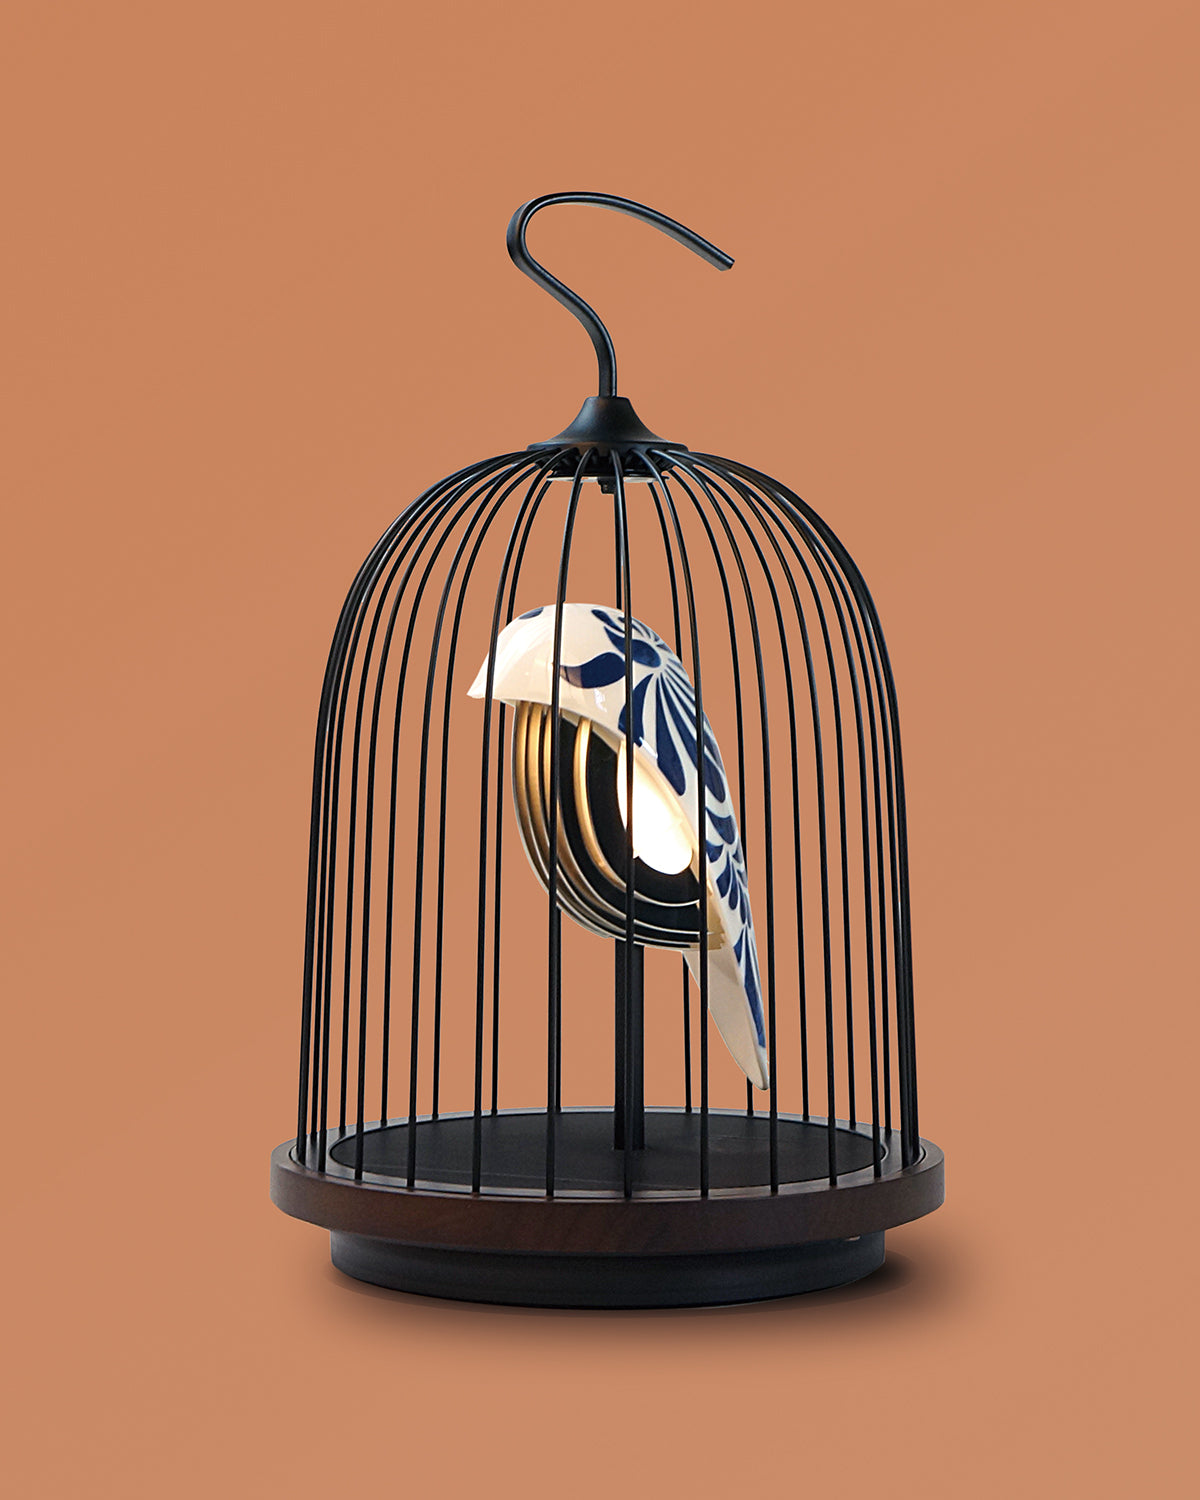 Bluetooth Speaker and Light white porcelain bird with navy blue feather pattern gold accents black cage and walnut color speaker base